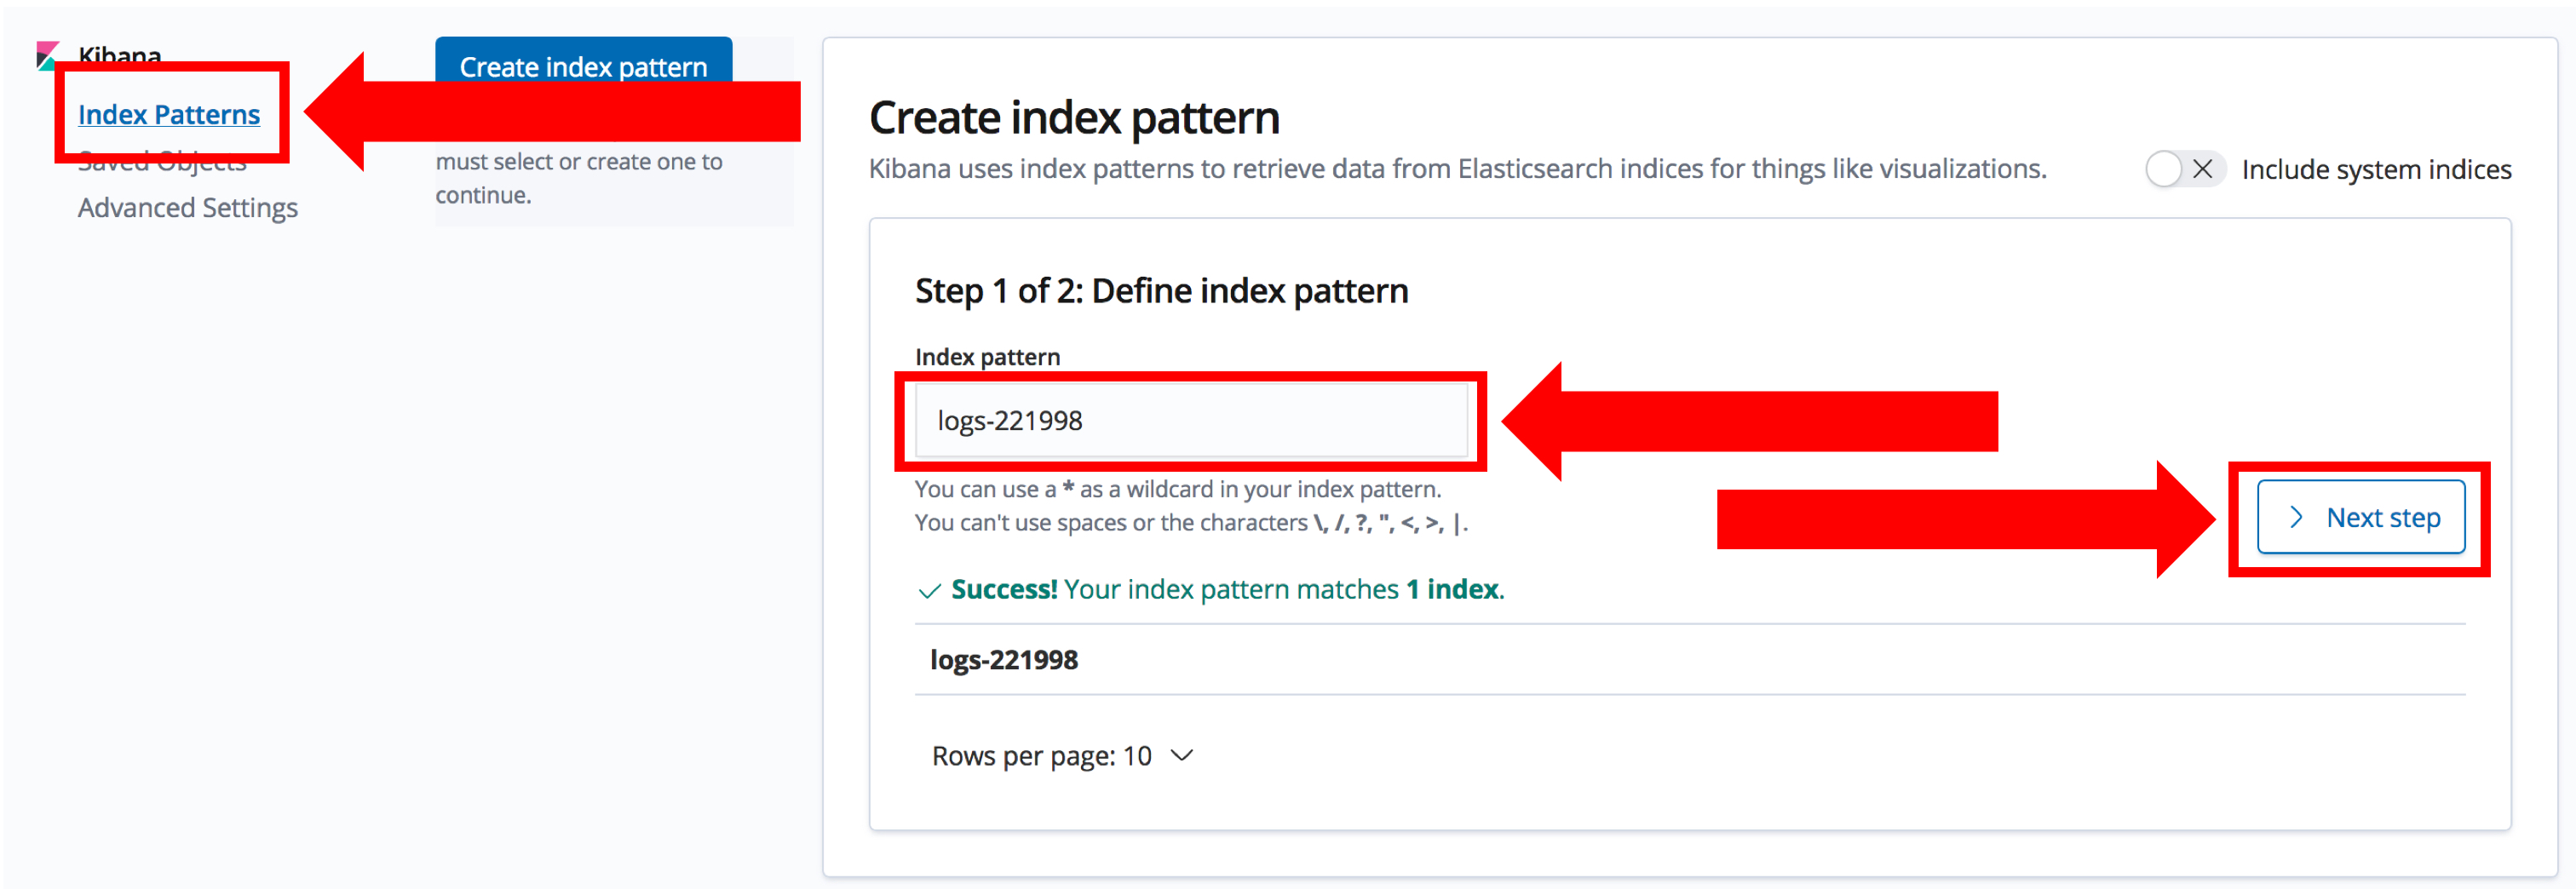 Creating an index pattern in Kibana, showing how to set the specific index